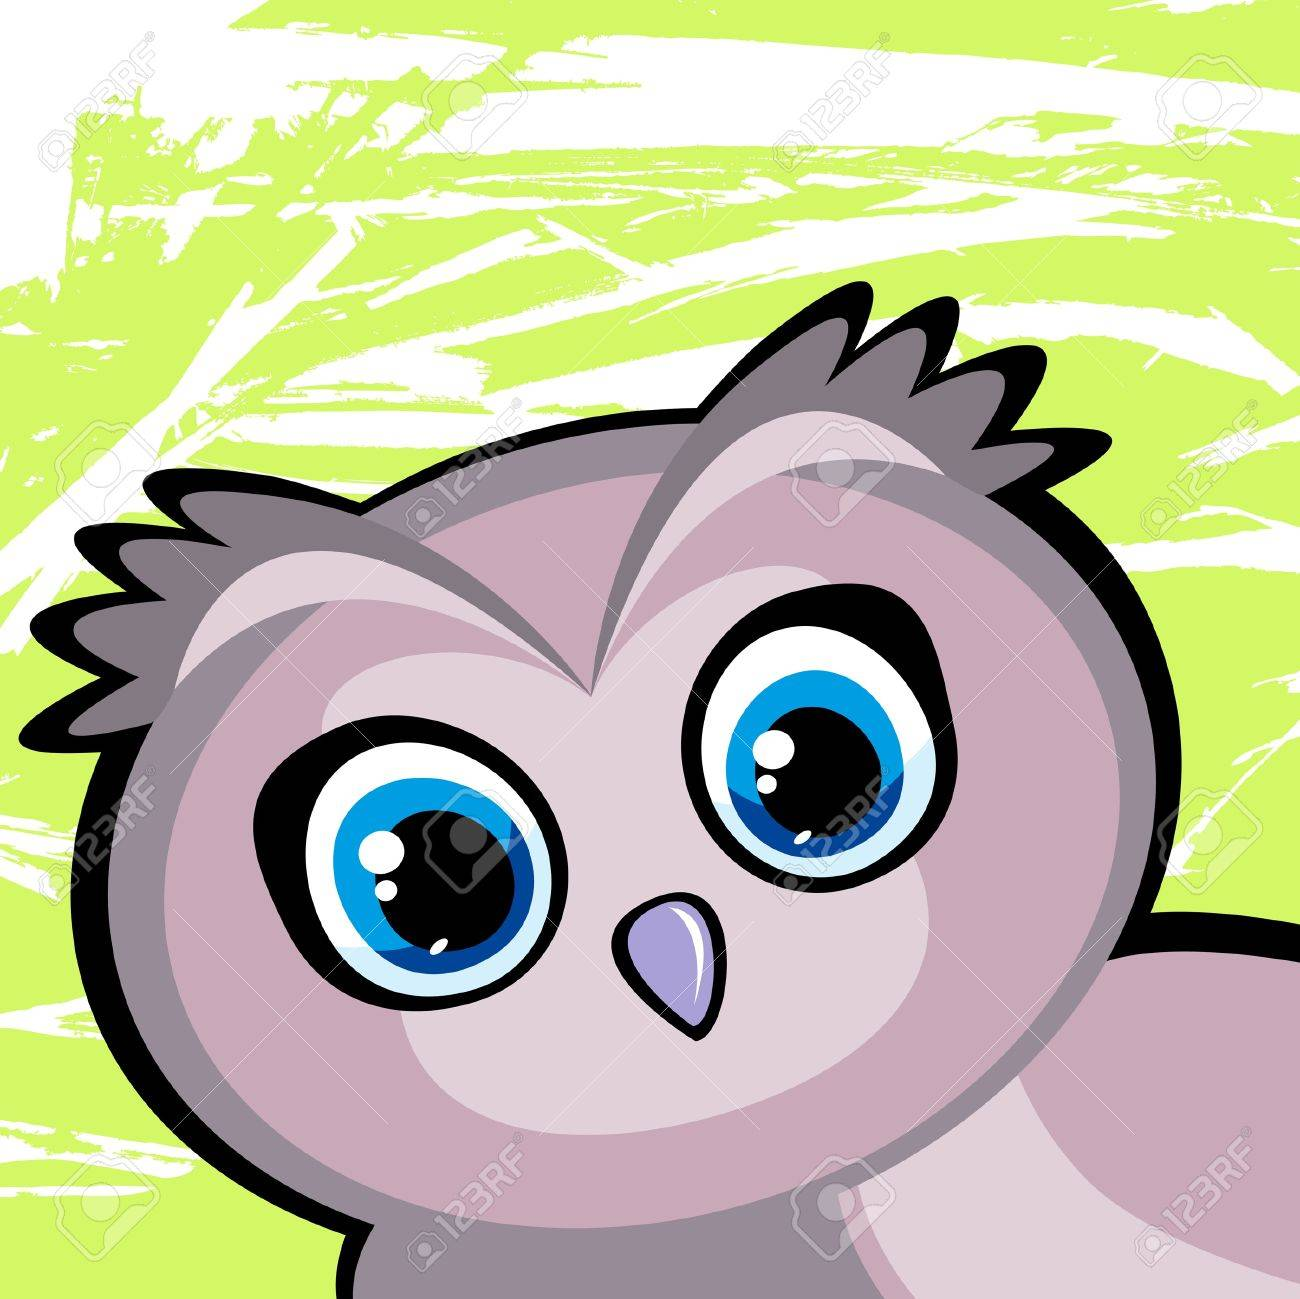 Cartoon funny owl with big blue eyes on a green background Stock Vector - 13046086